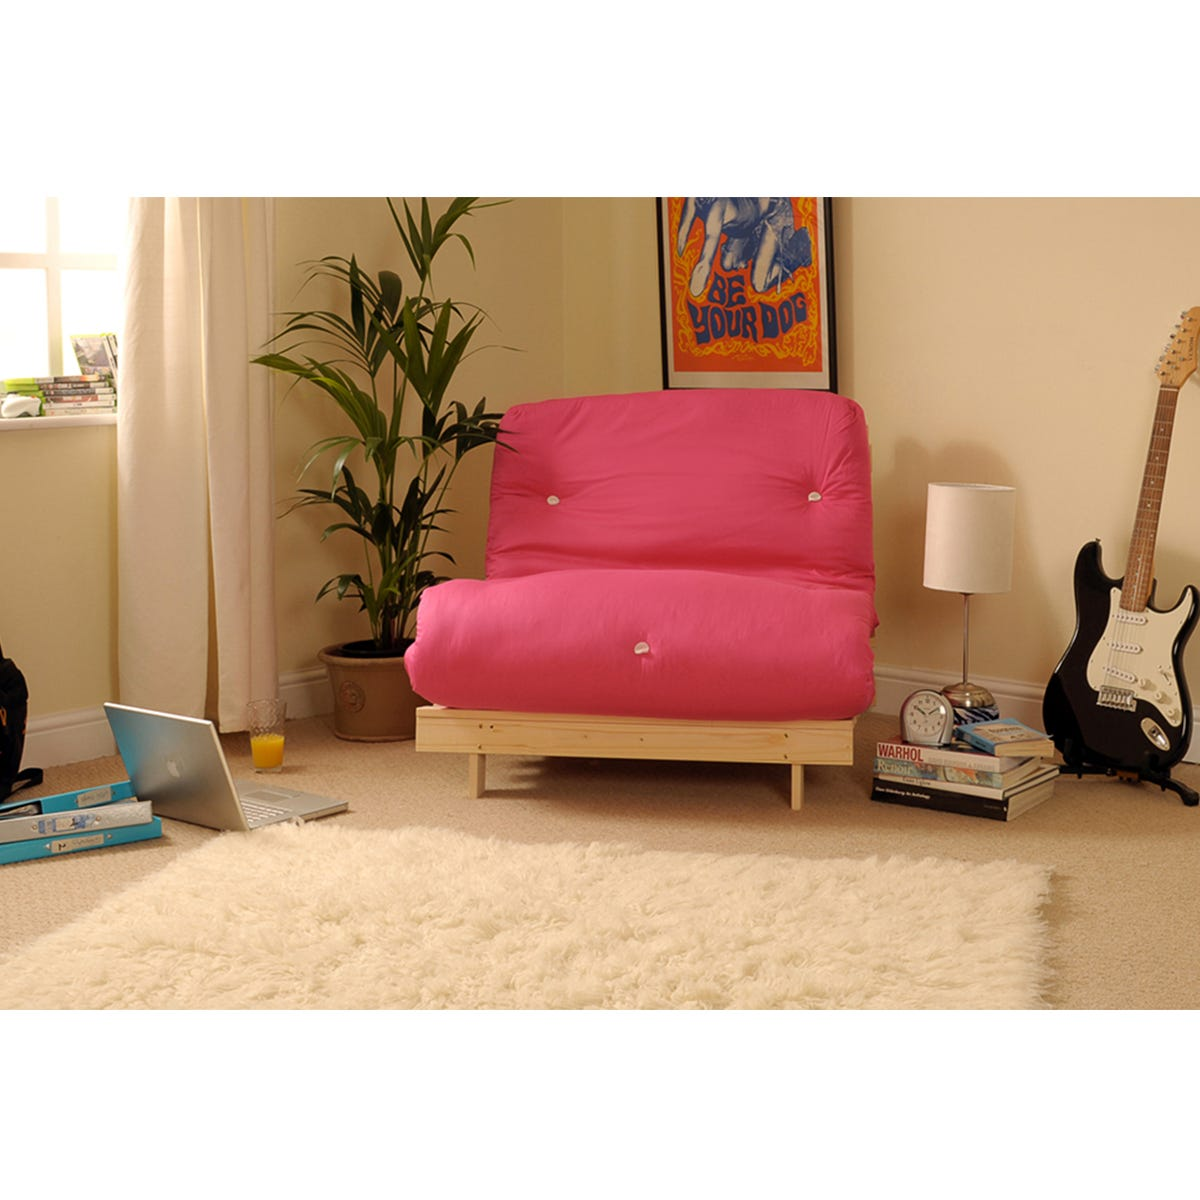 Albury Pink Sofa Bed With Tufted Mattress - Small Double